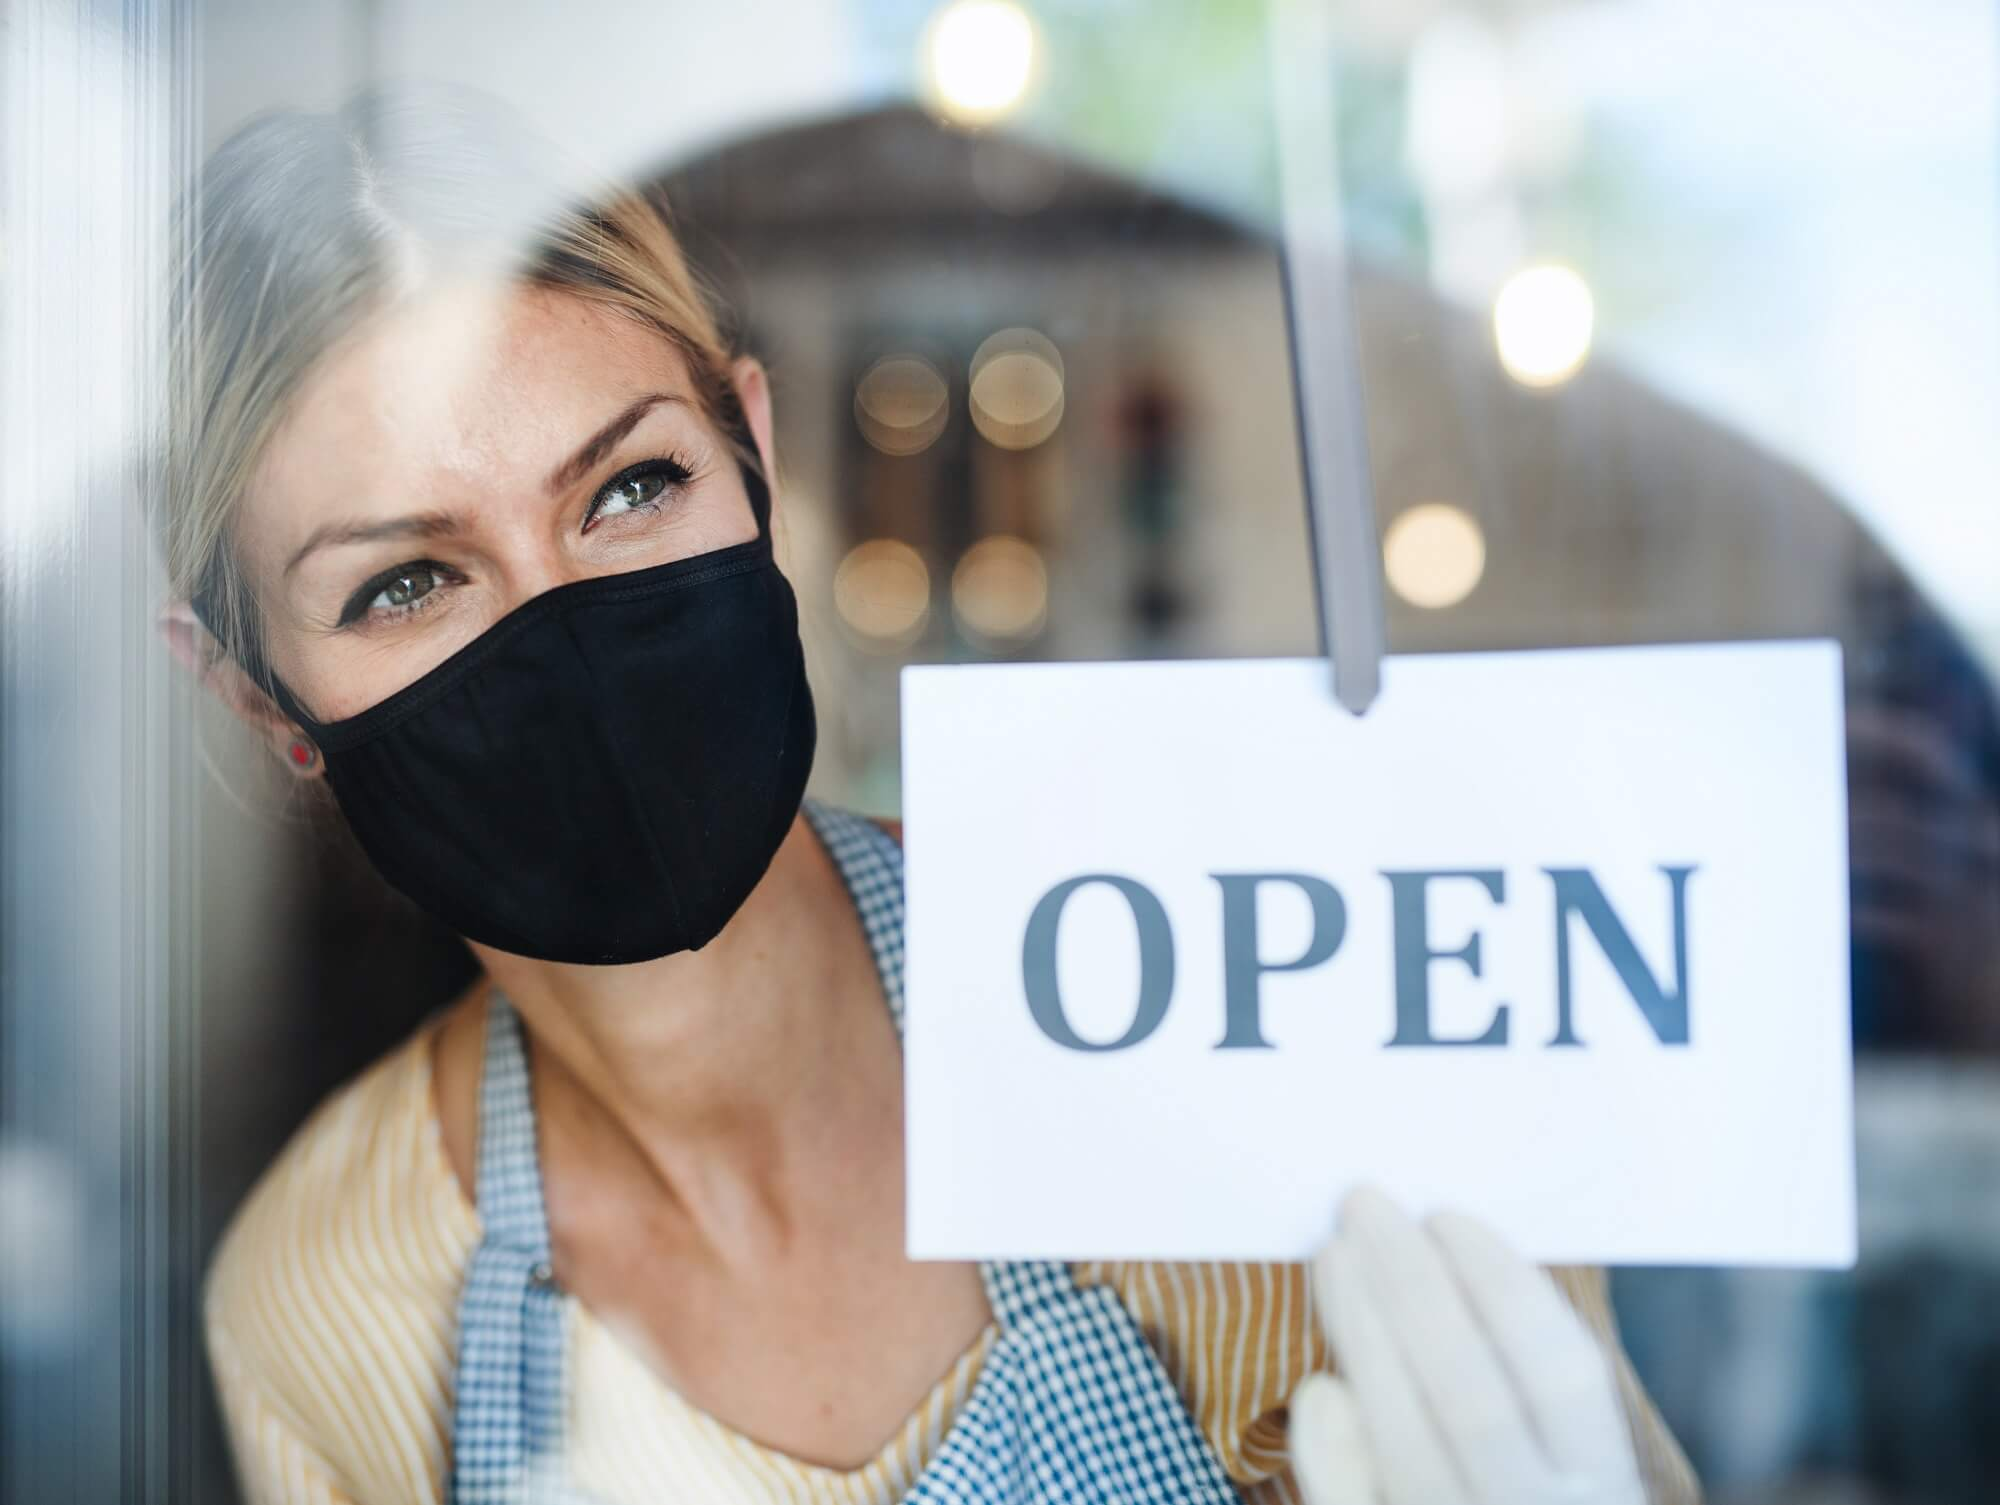 shop owner welcoming customers safely for cyber monday deals